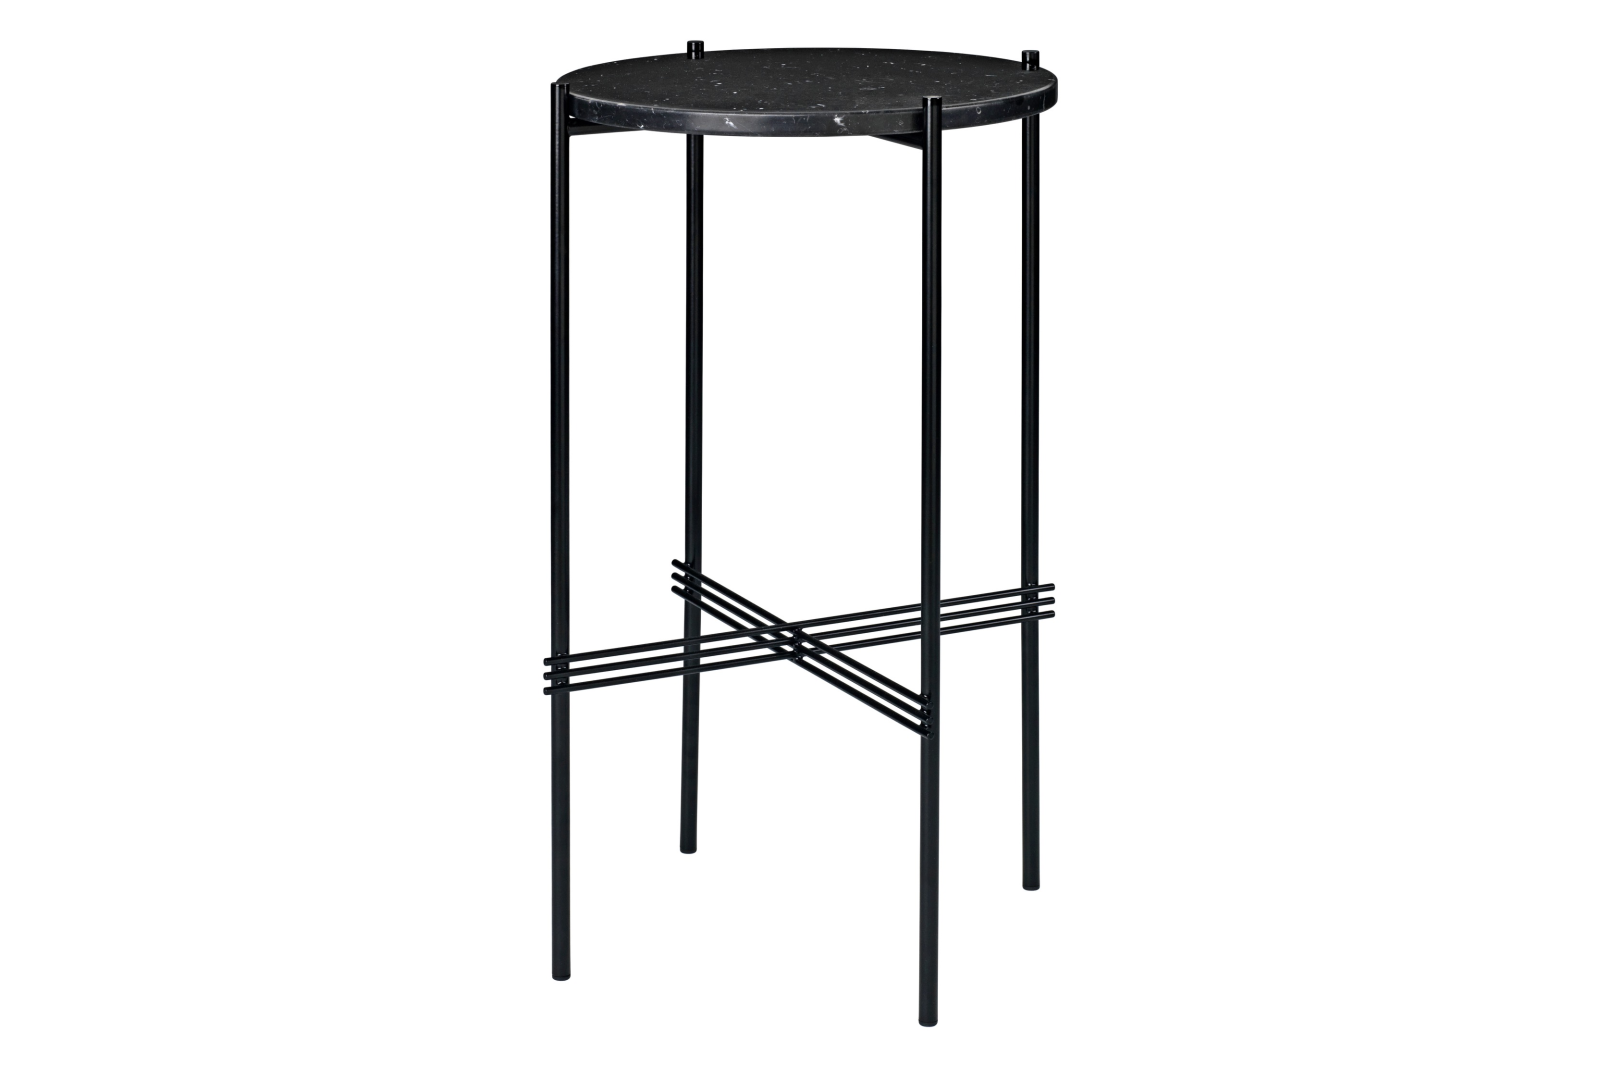 TS Round Console Table with Marble Top Gubi Marble Nero Marquina, Gubi Metal Black